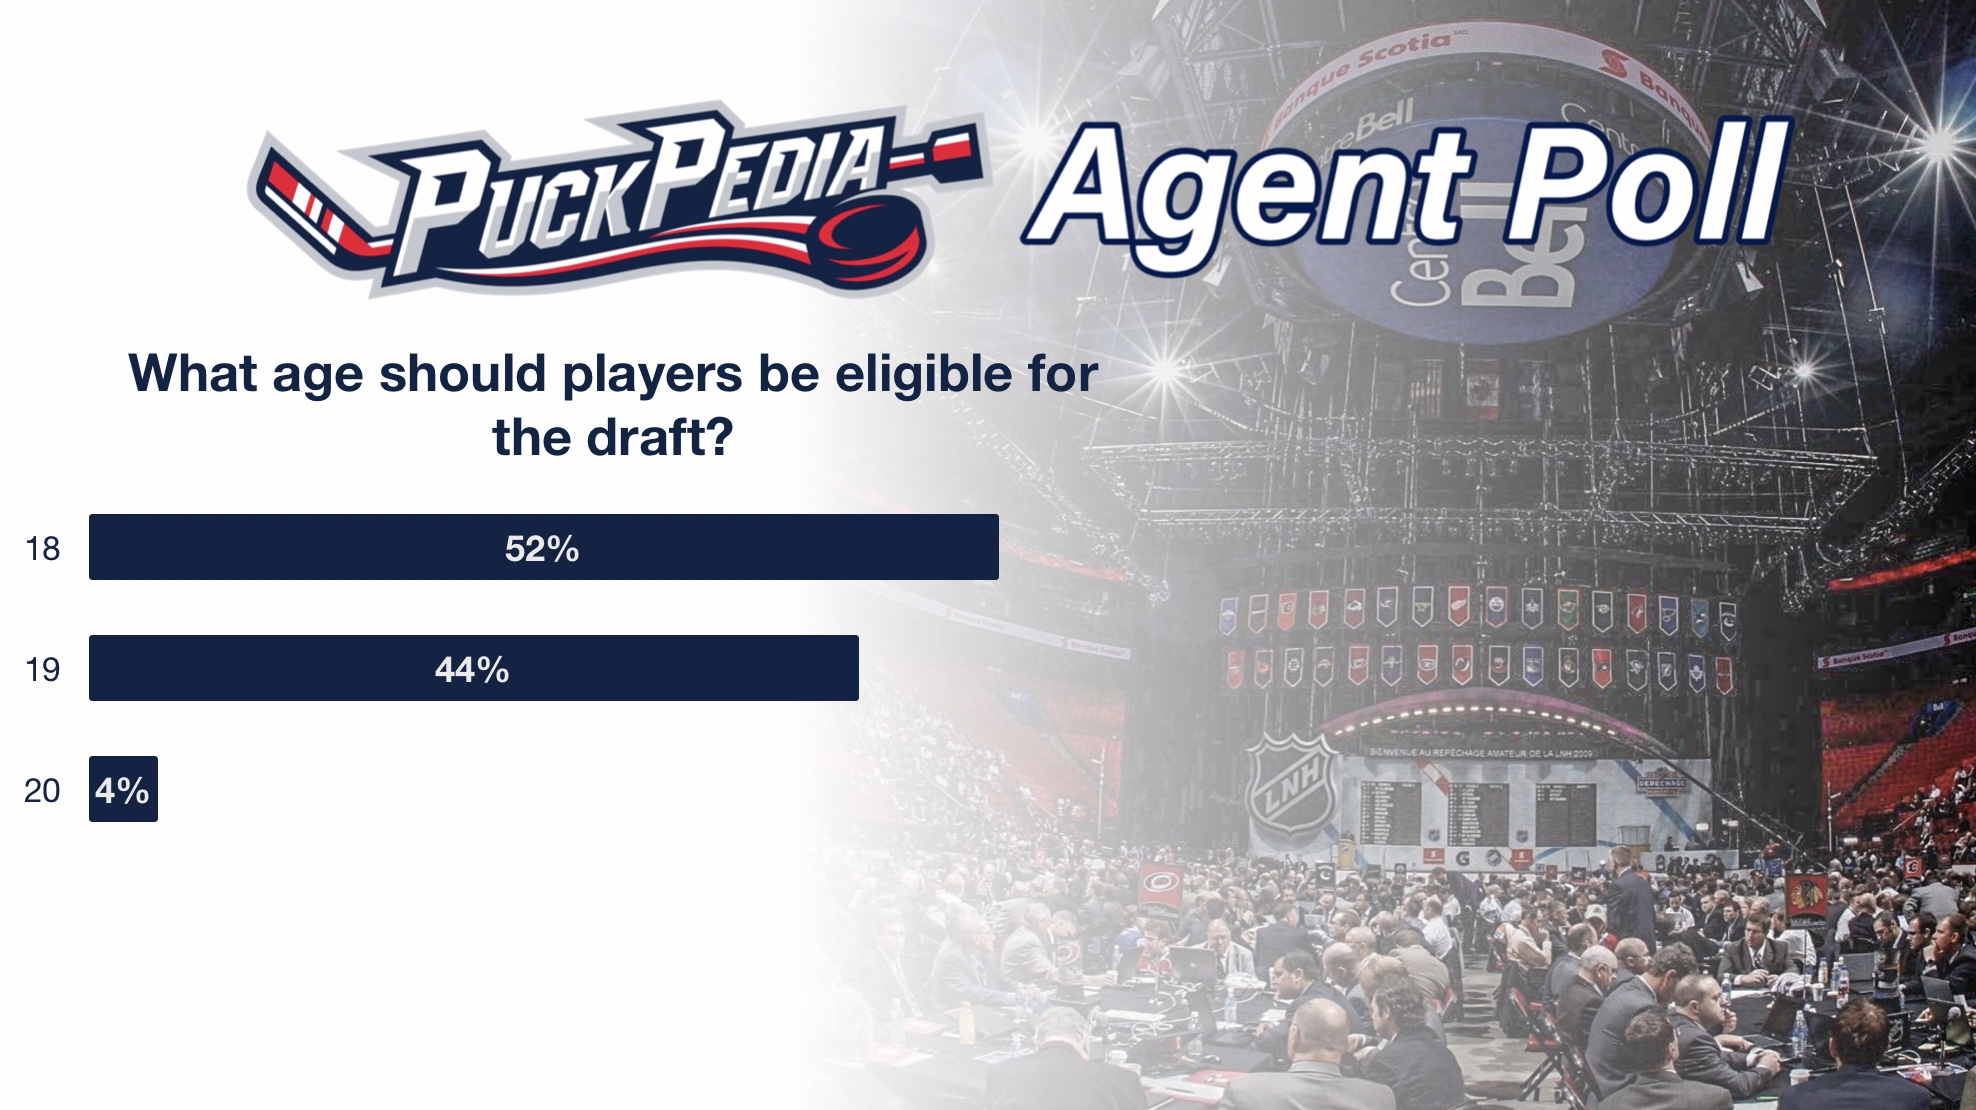 What age should players be eligible for the Draft